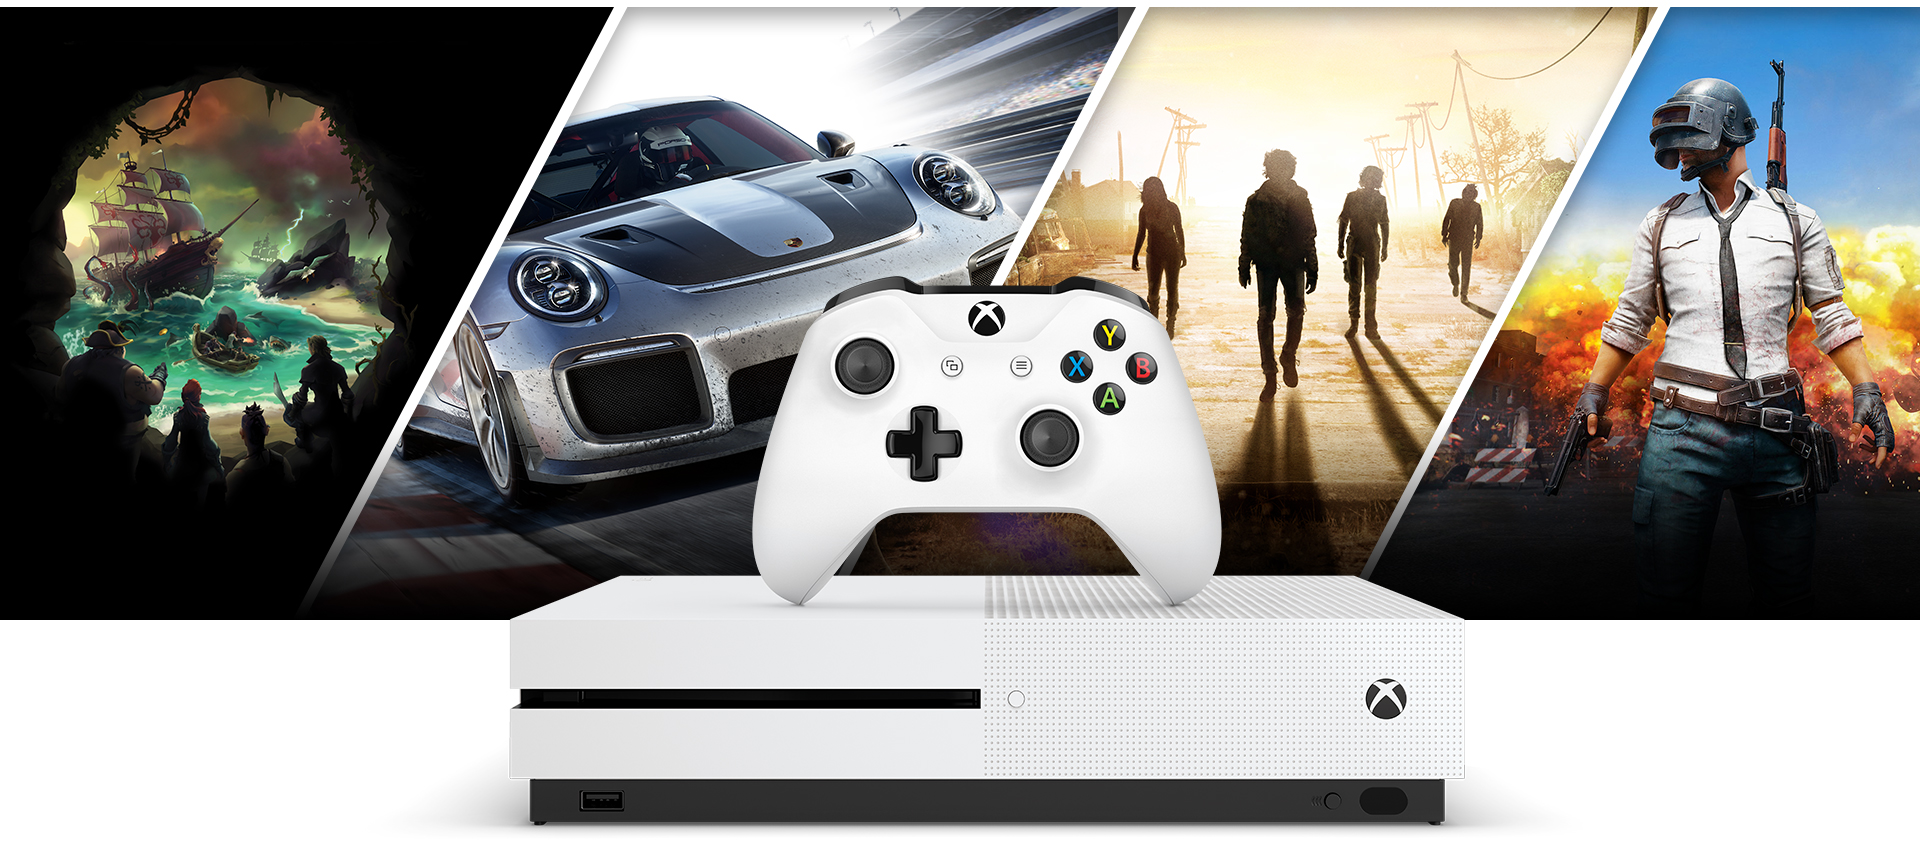 Sea of Thieves-, Forza 7-, State of Decay 3- og Player Unknown's Battlegrounds-grafikk bak en Xbox One S og hvit Xbox-kontroller